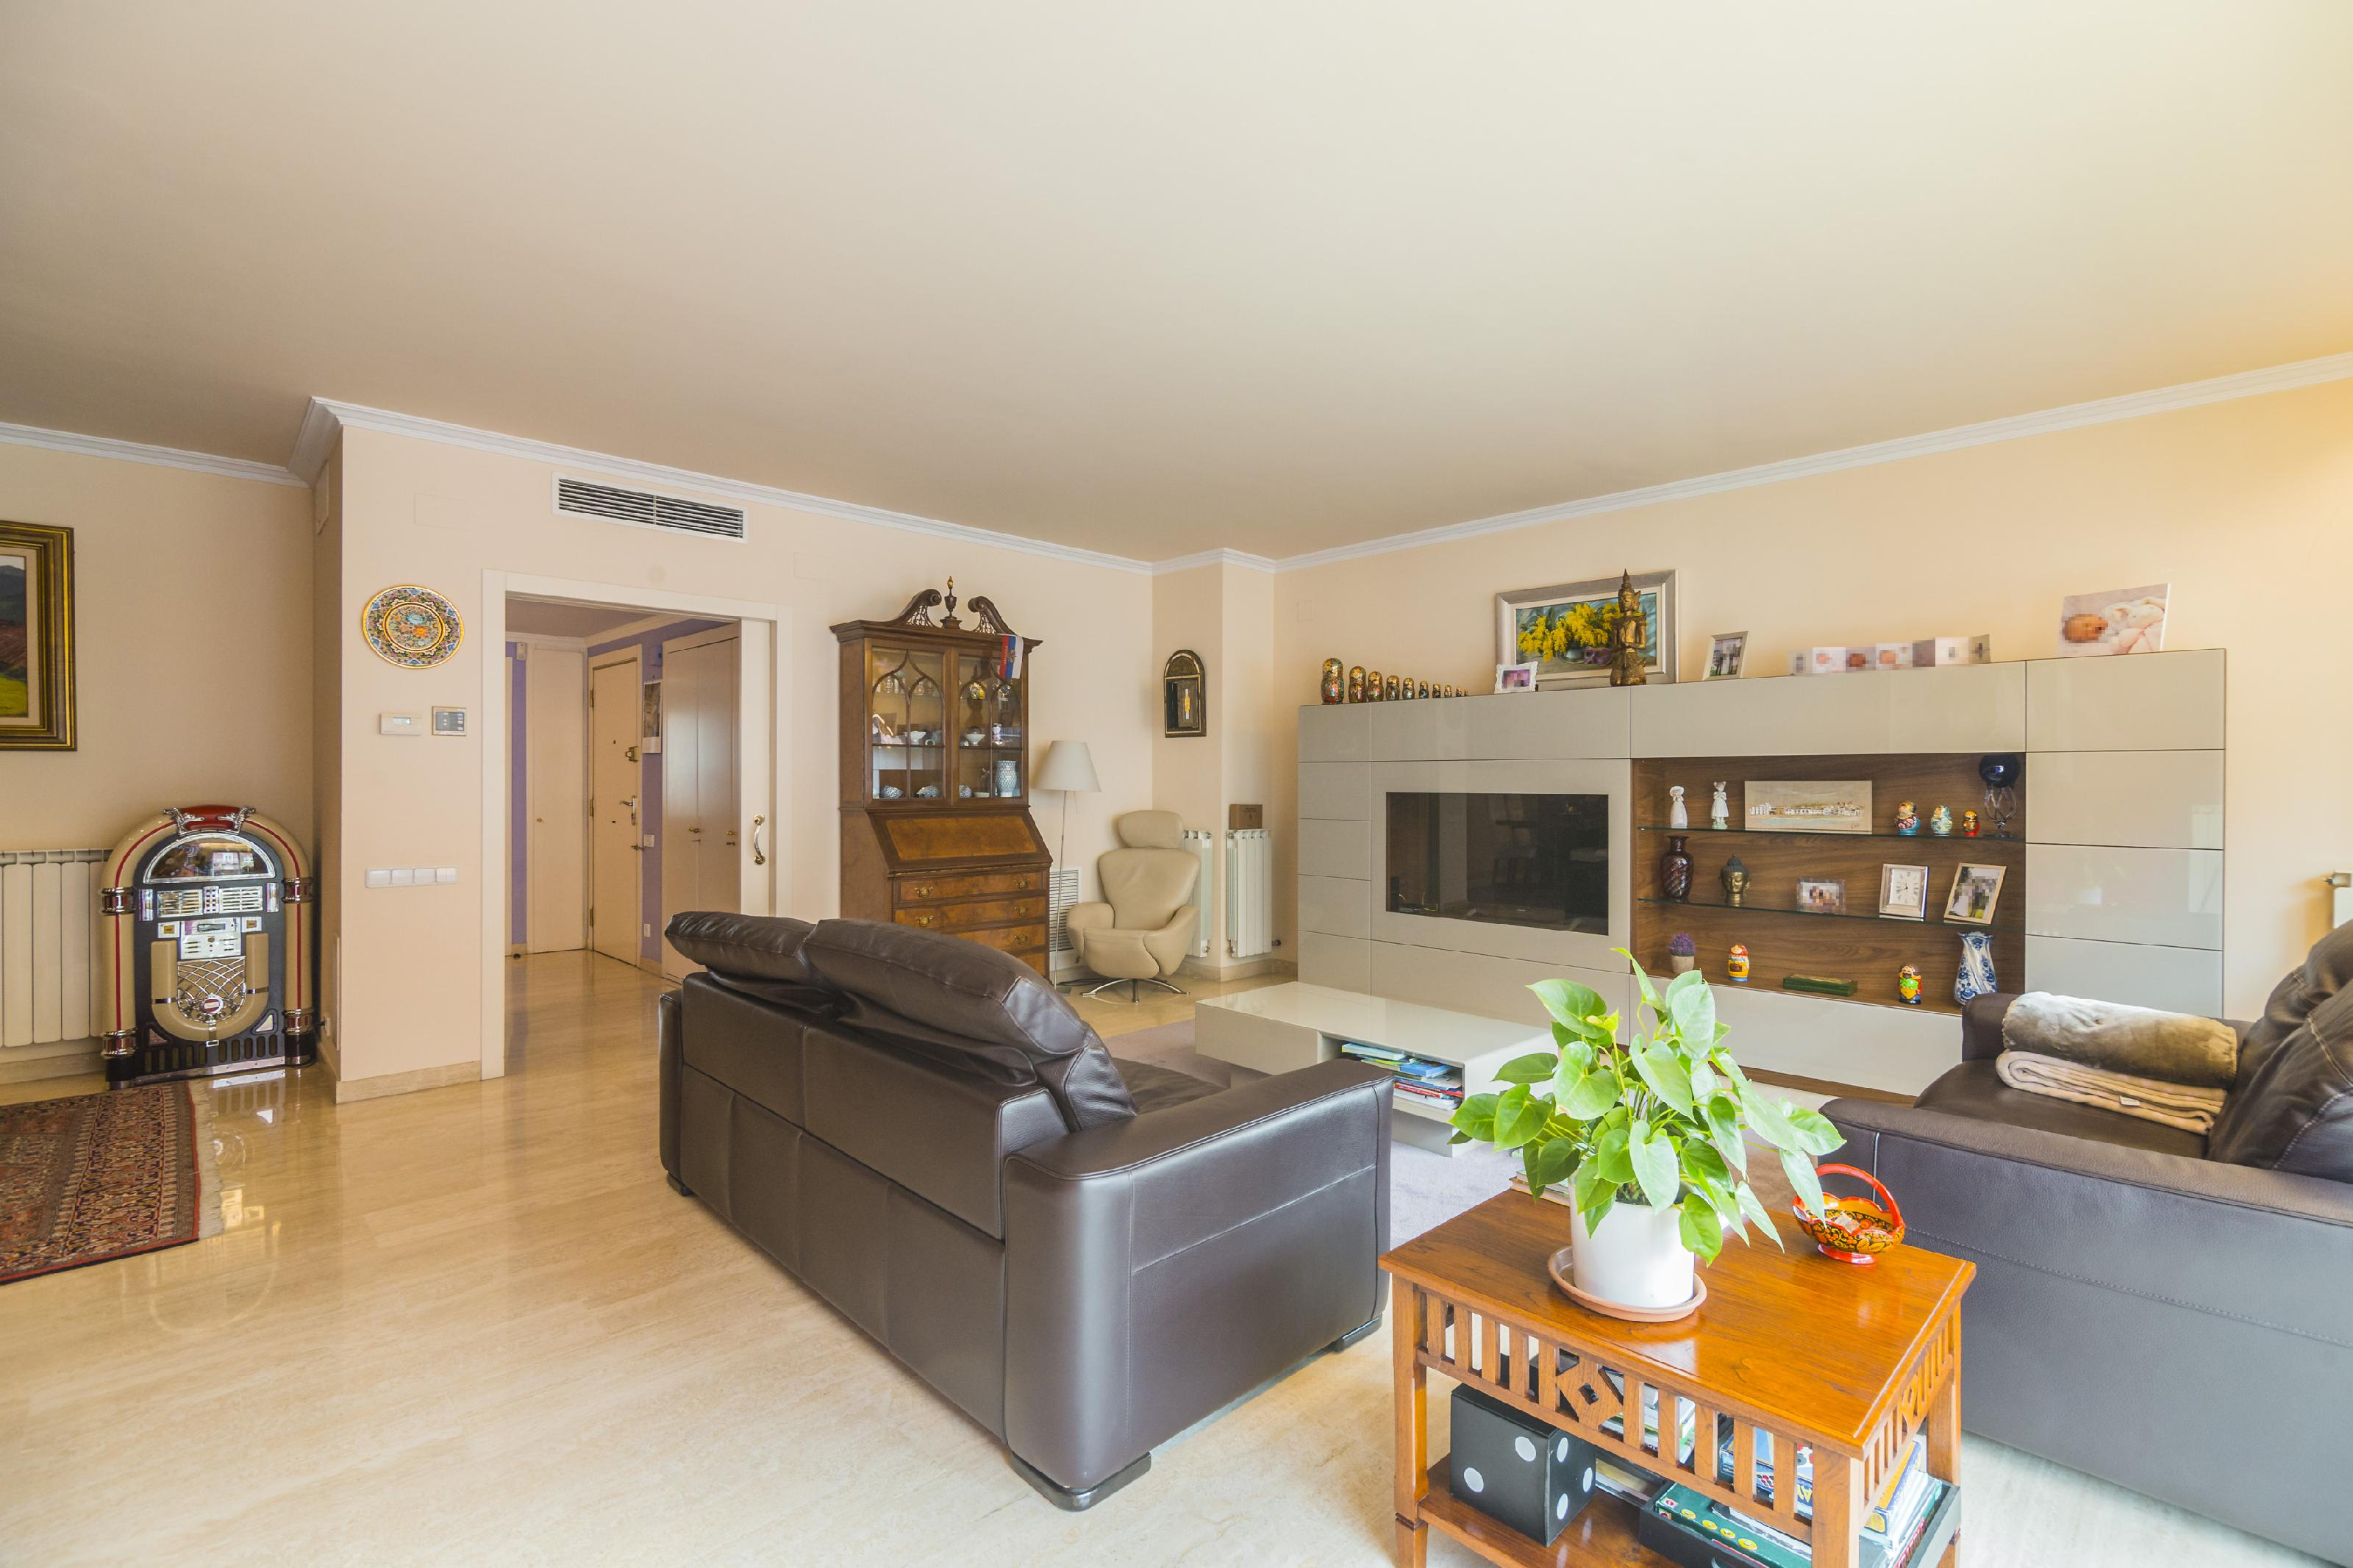 232637 Penthouse for sale in Sarrià-Sant Gervasi, Sant Gervasi-Galvany 22